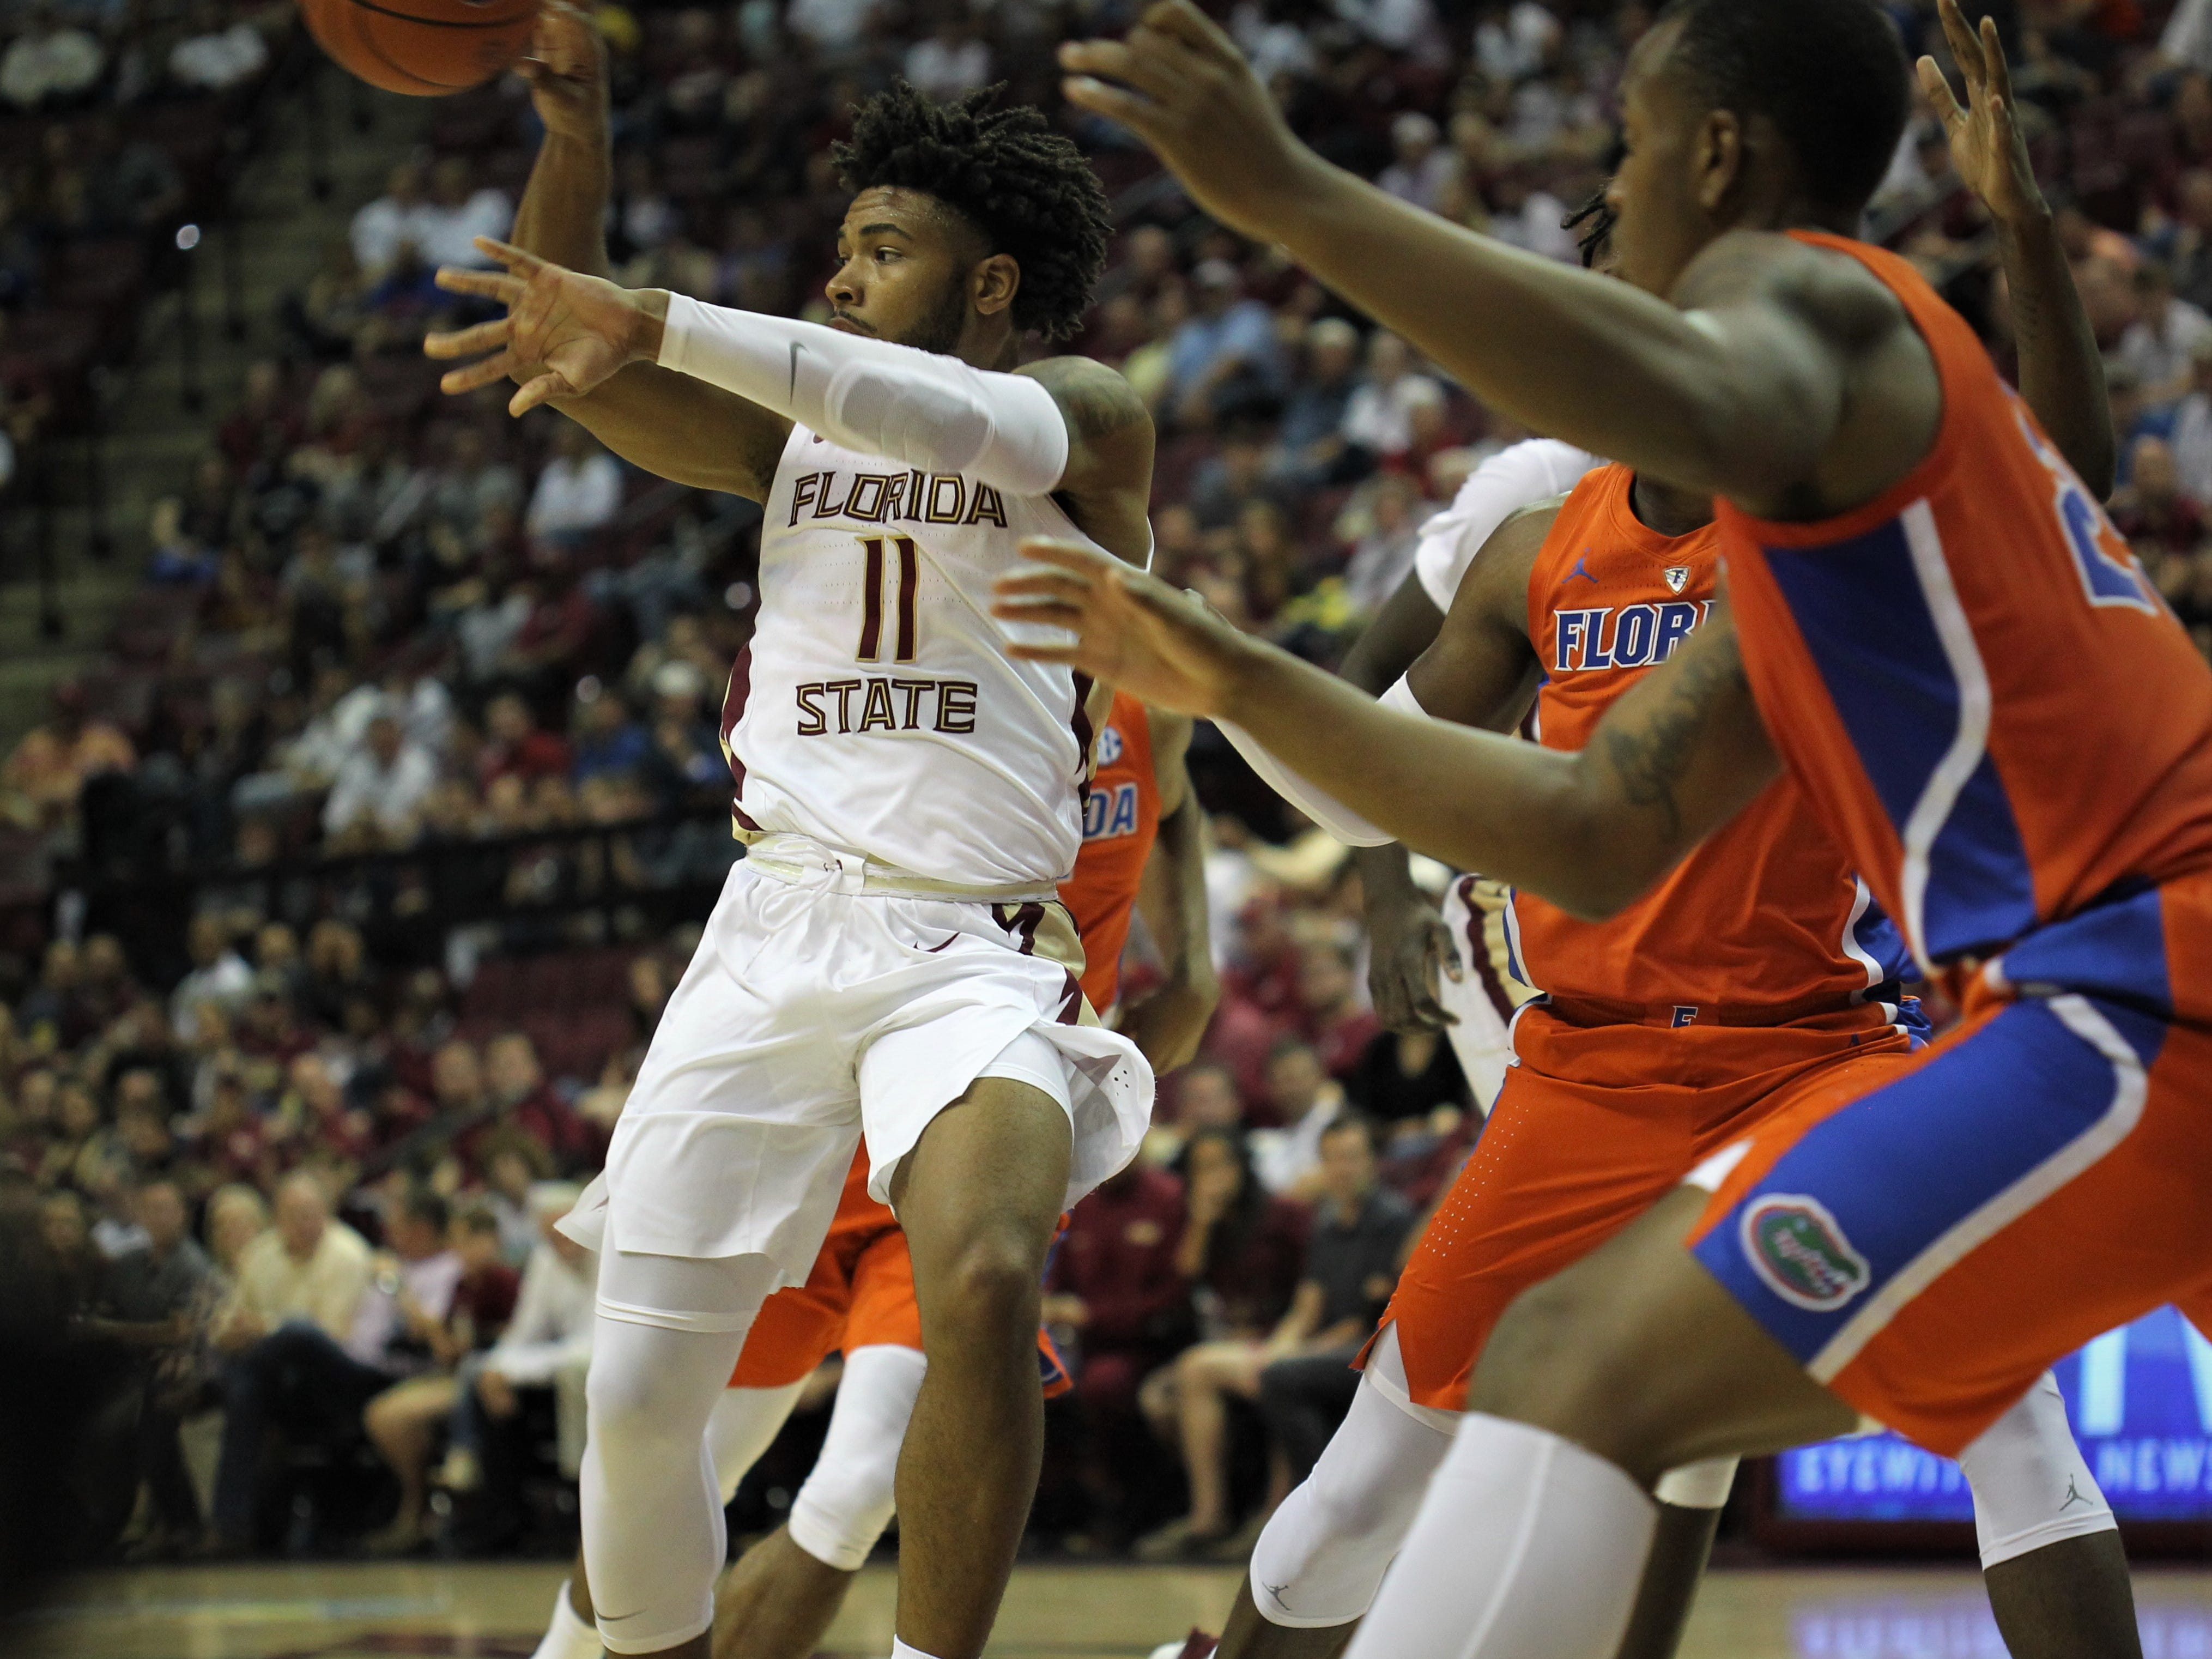 Florida State's David Nichols makes a pass off a dribble-drive during the Sunshine Showdown game against Florida on Tuesday at the Tucker Civic Center.